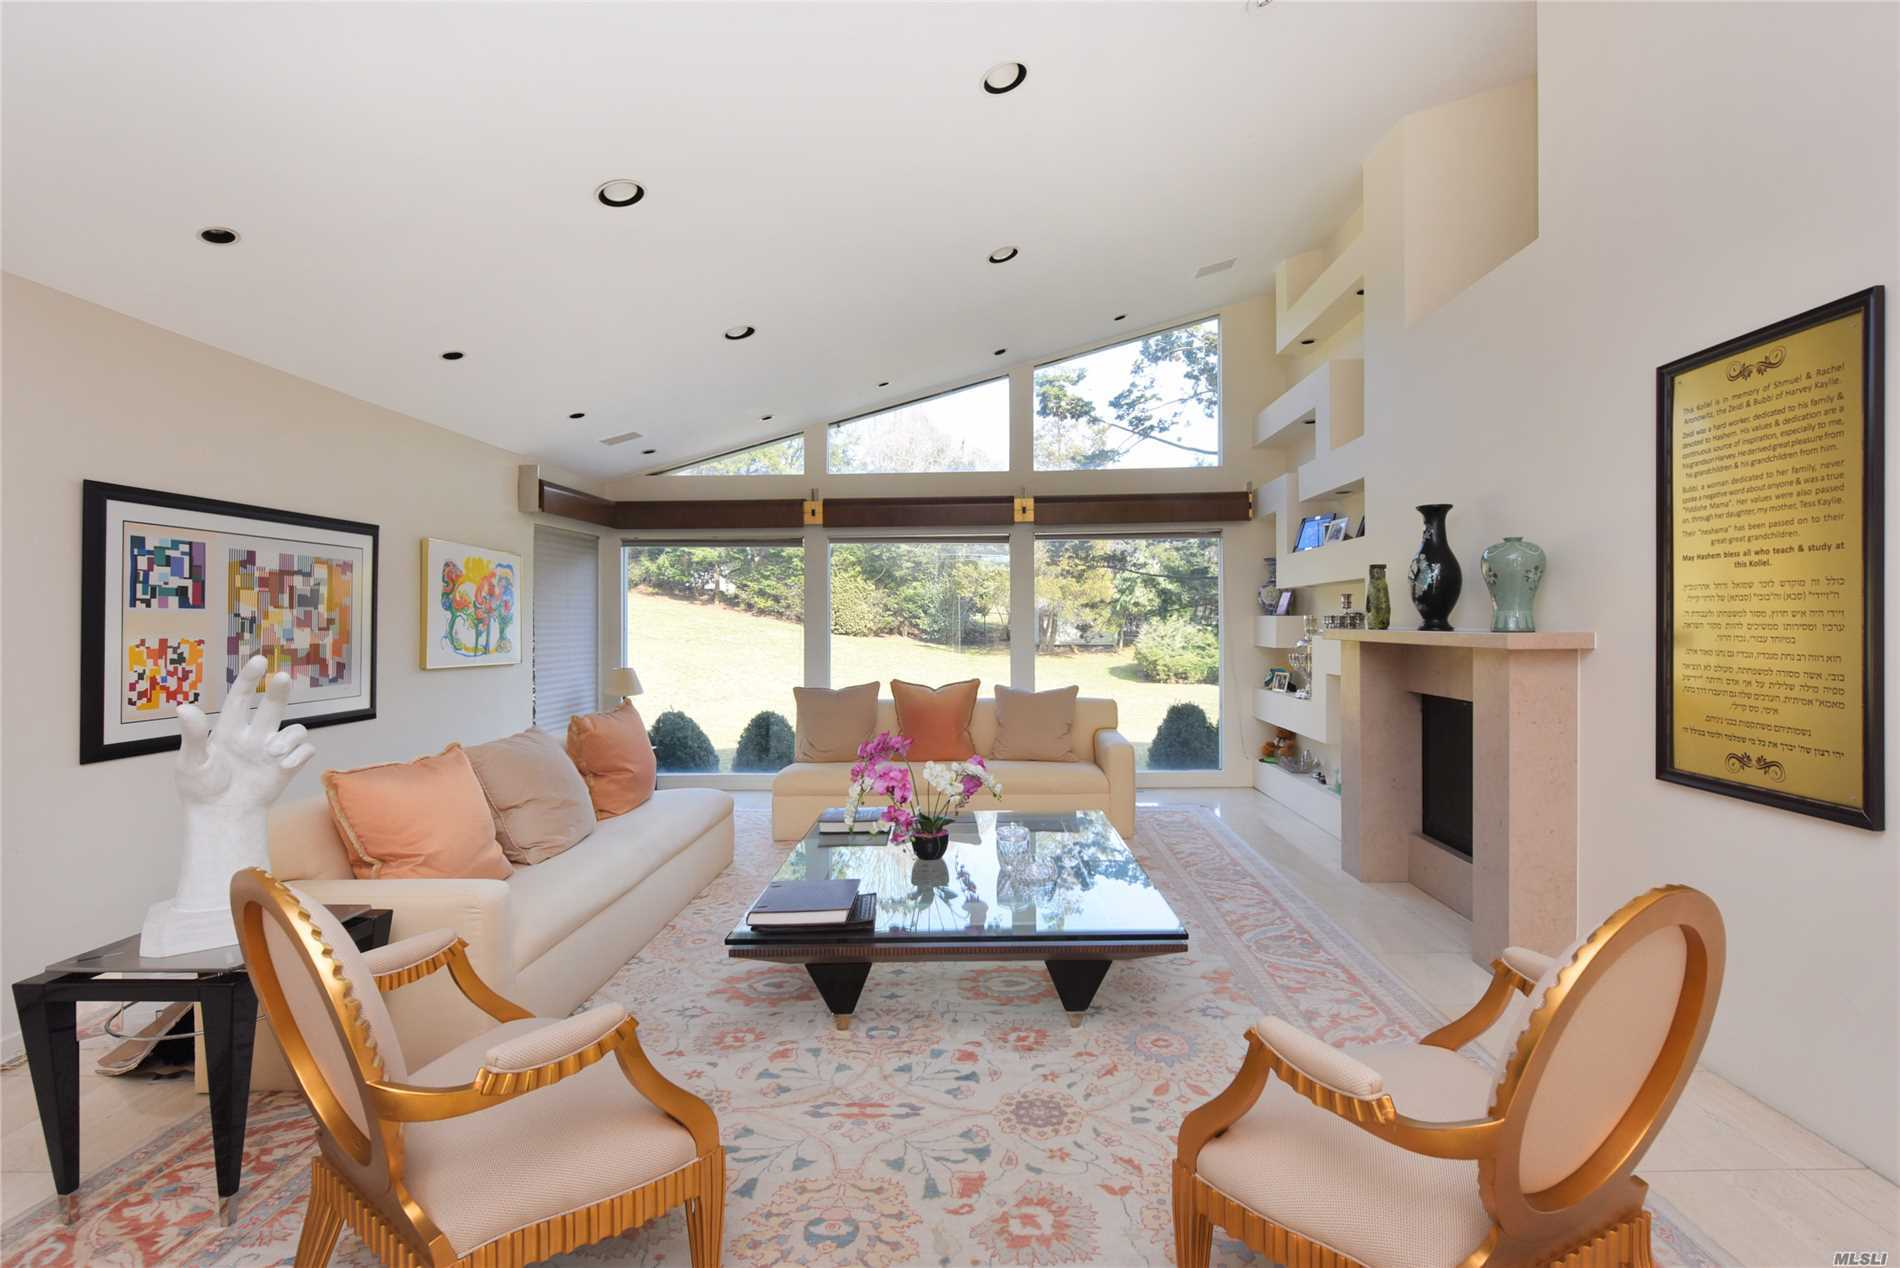 Natural light fills this contemporary style home with an airy open floor plan boasting 16 ft cathedral ceiling adjoining the LR & family room with double sided fpl in the center. Eat-in-kitchen features high-end appliances + prep island + custom cabinetry. Master on main includes his & her baths + WICs along with a 2nd ensuite BD + BD converted into an office. Two additional ensuite BDs on 2nd fl.Gym bar & playroom in basement. Beautifully manicured 1 acre property with in-ground pool and deck.